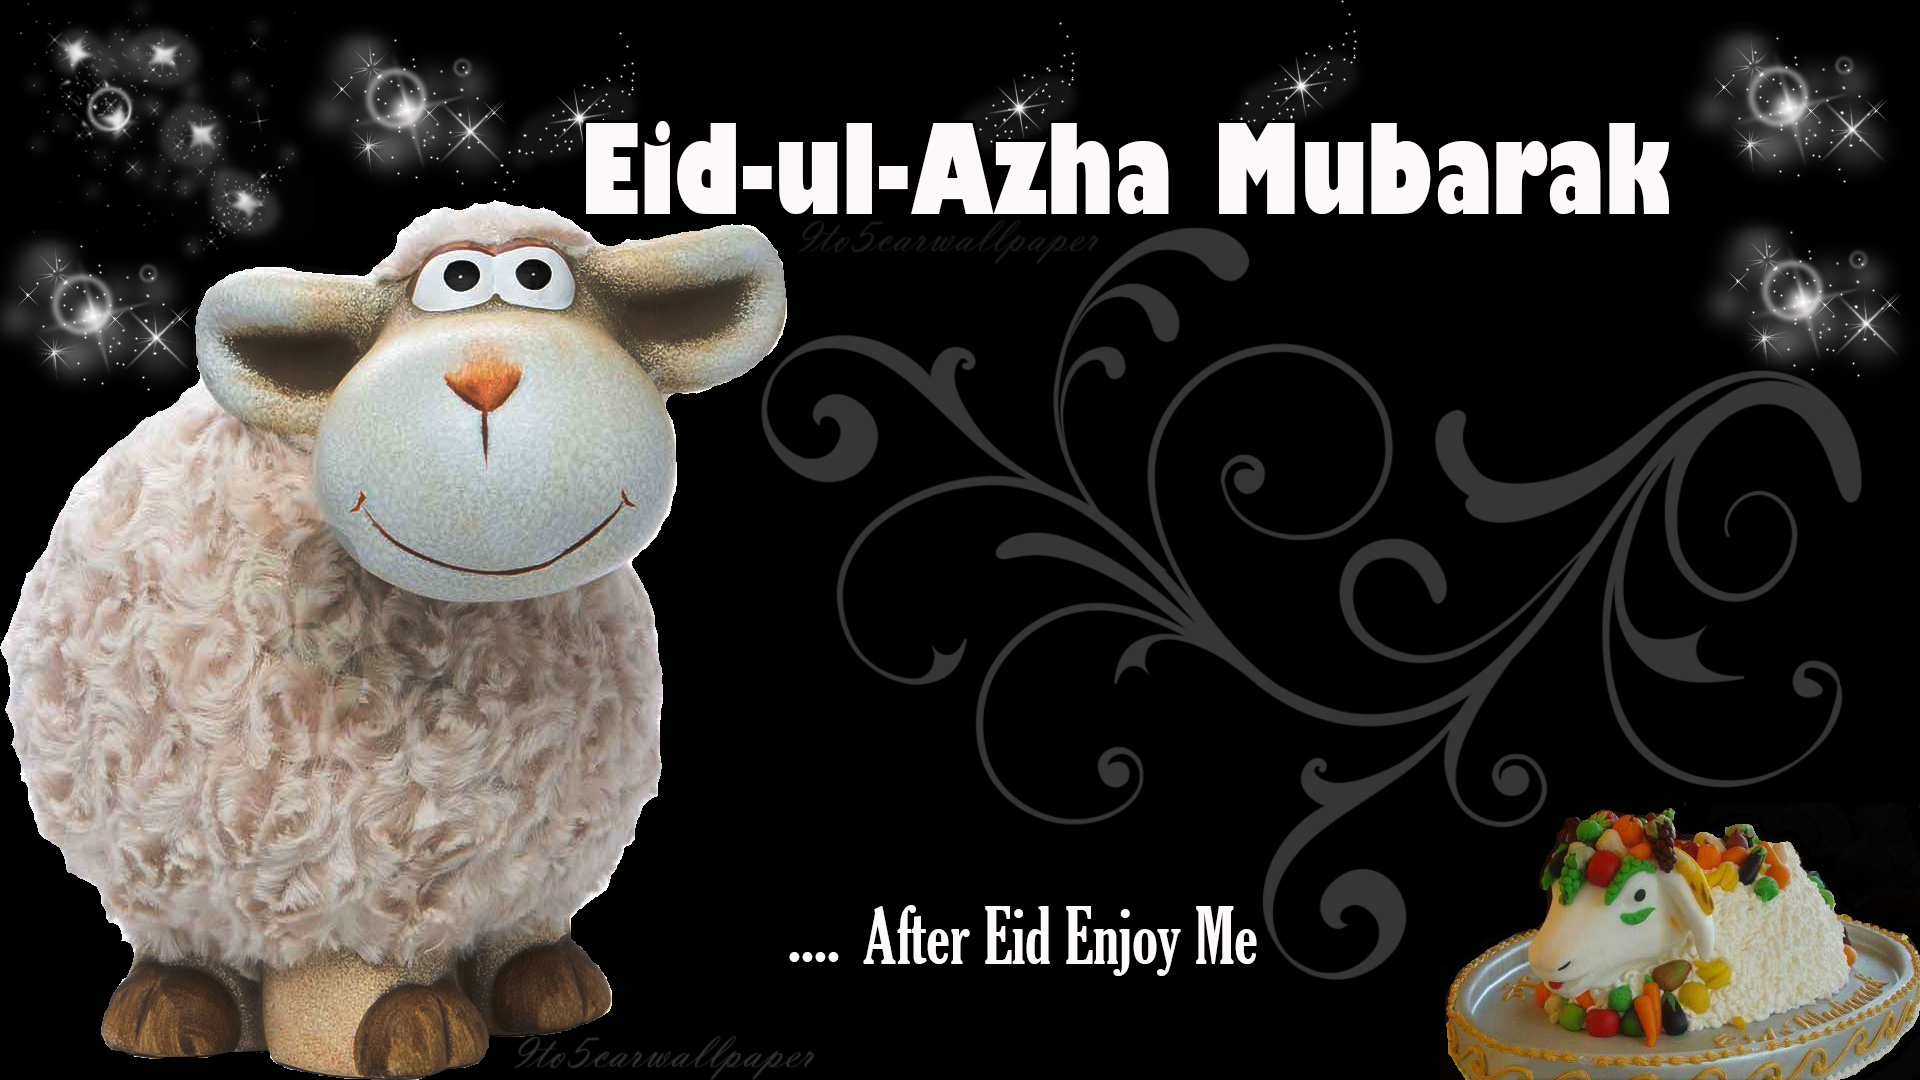 Eid ul azha greetings wallpapers 2017 car wallpapers eid ul azha mubarak hd wallpaper 2017 kristyandbryce Choice Image